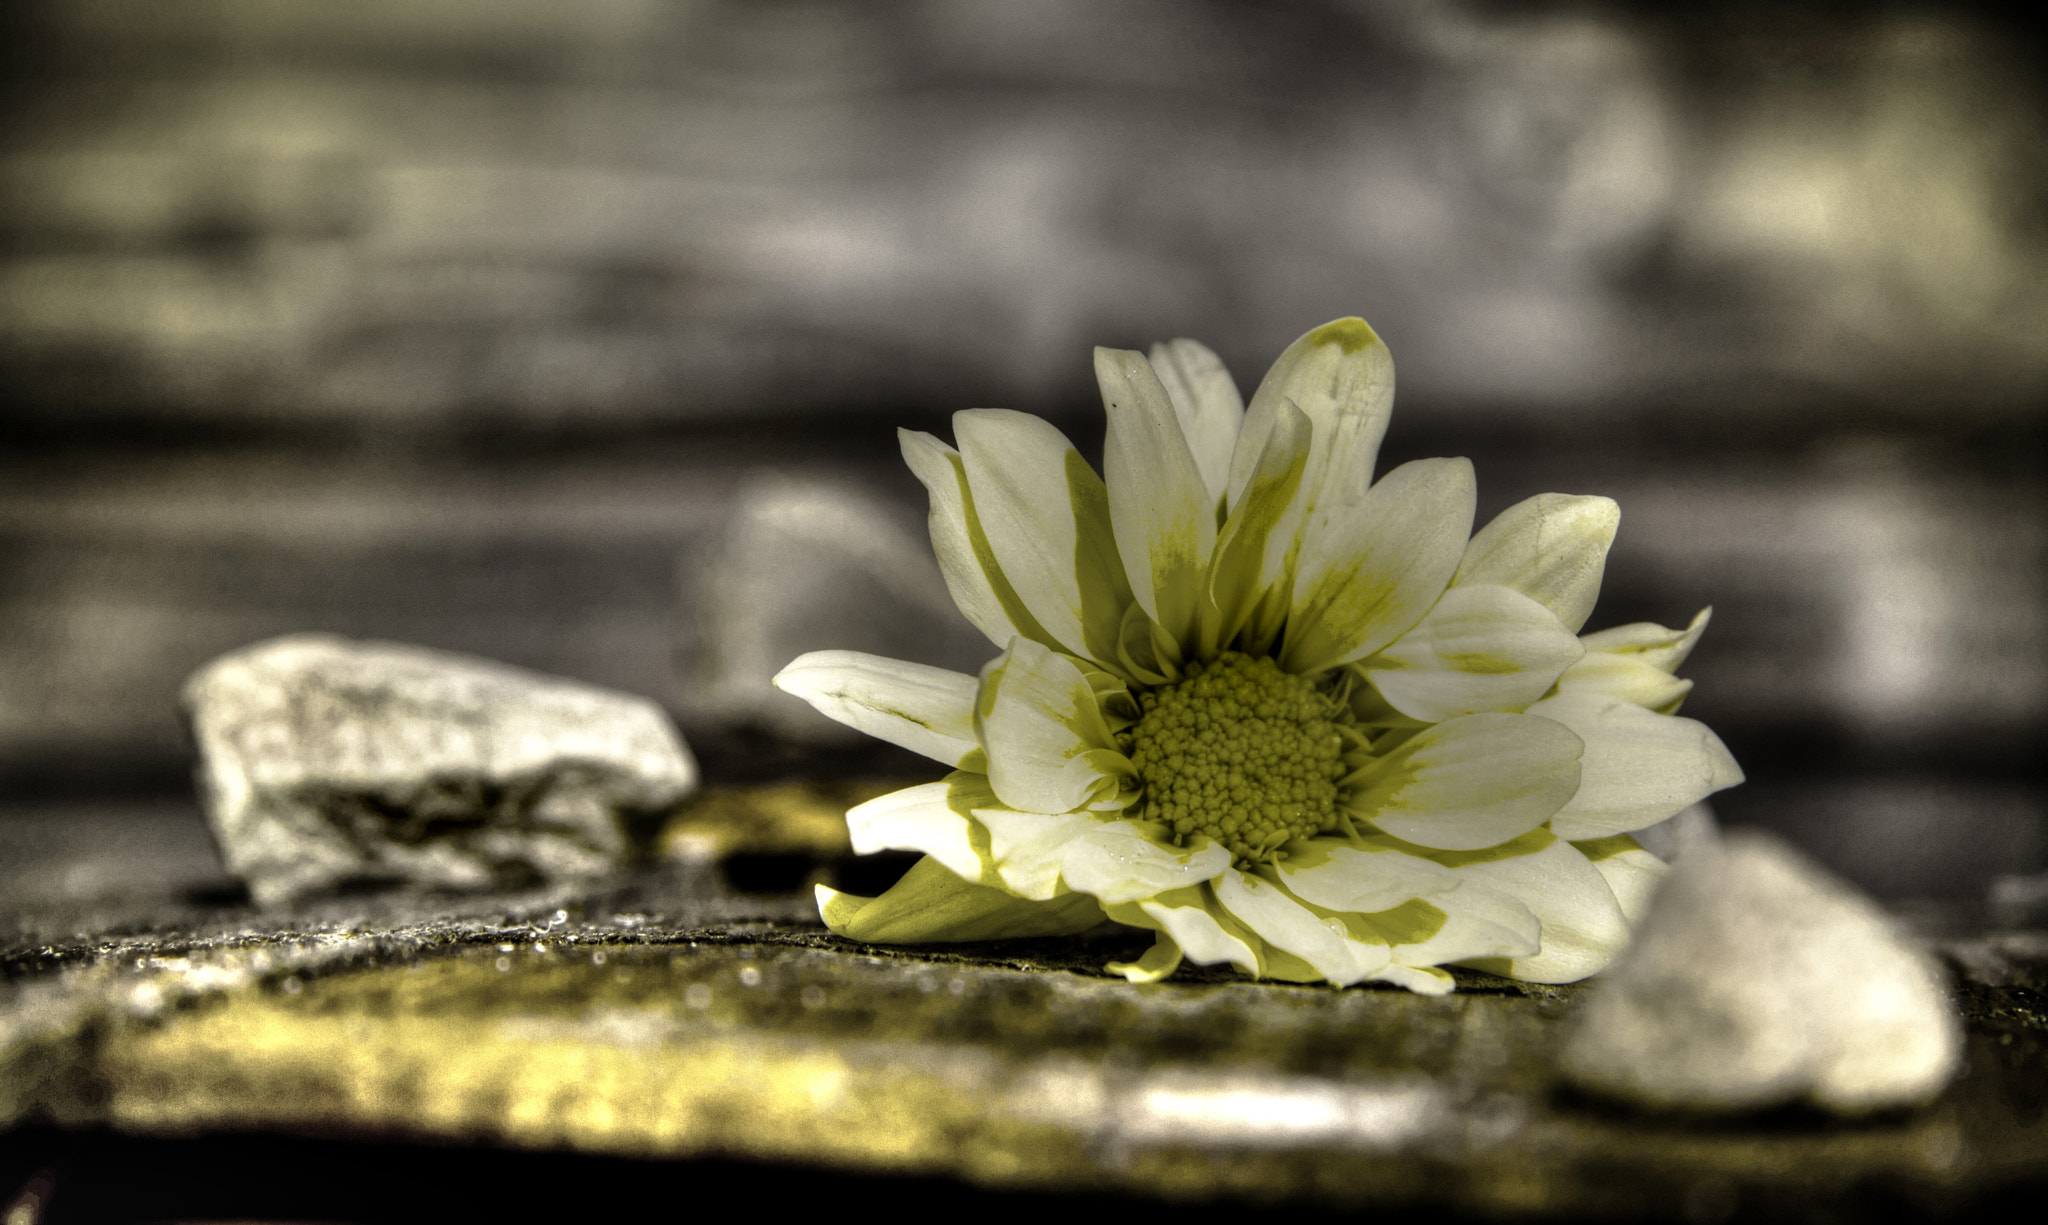 Photograph Hint Of Yellow by Stephen R on 500px